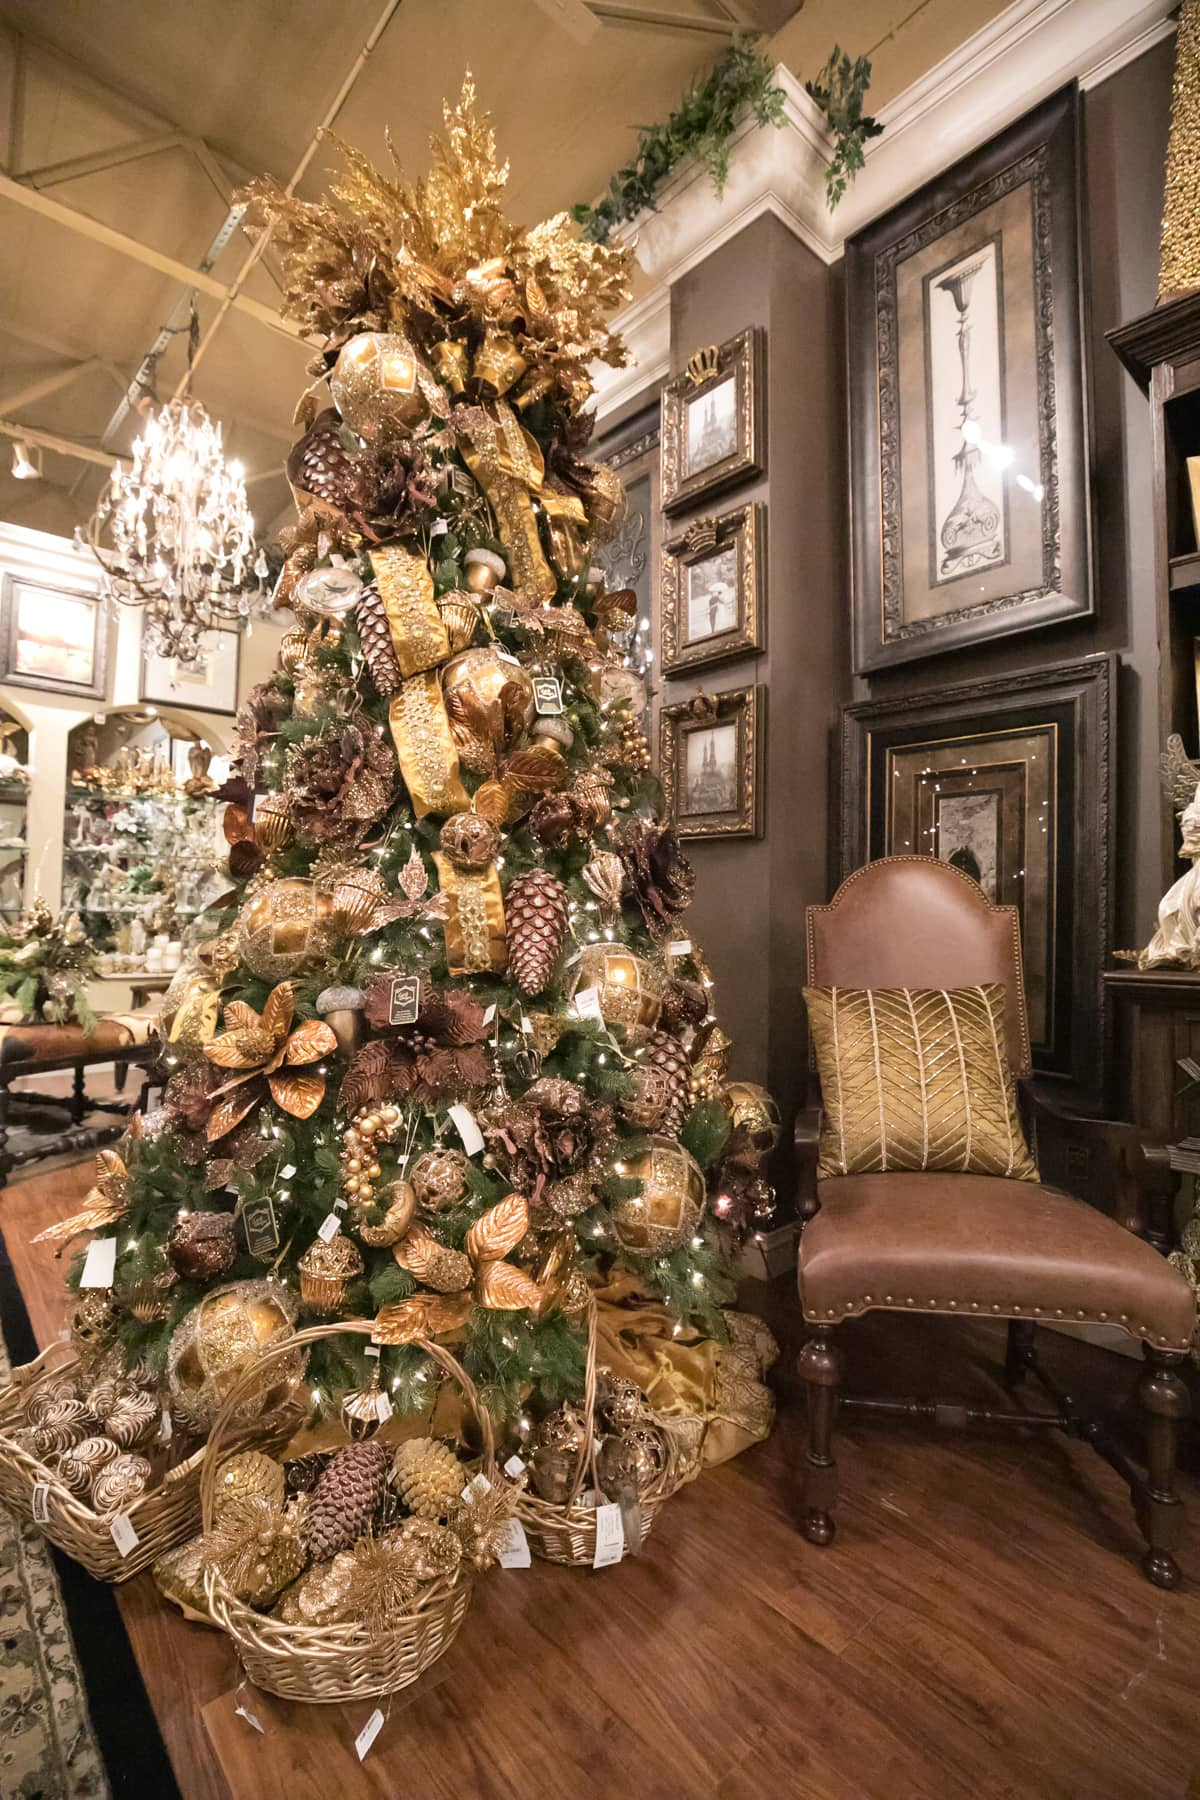 Linly-Designs-Luxury-Christmas-Decor – Linly Designs